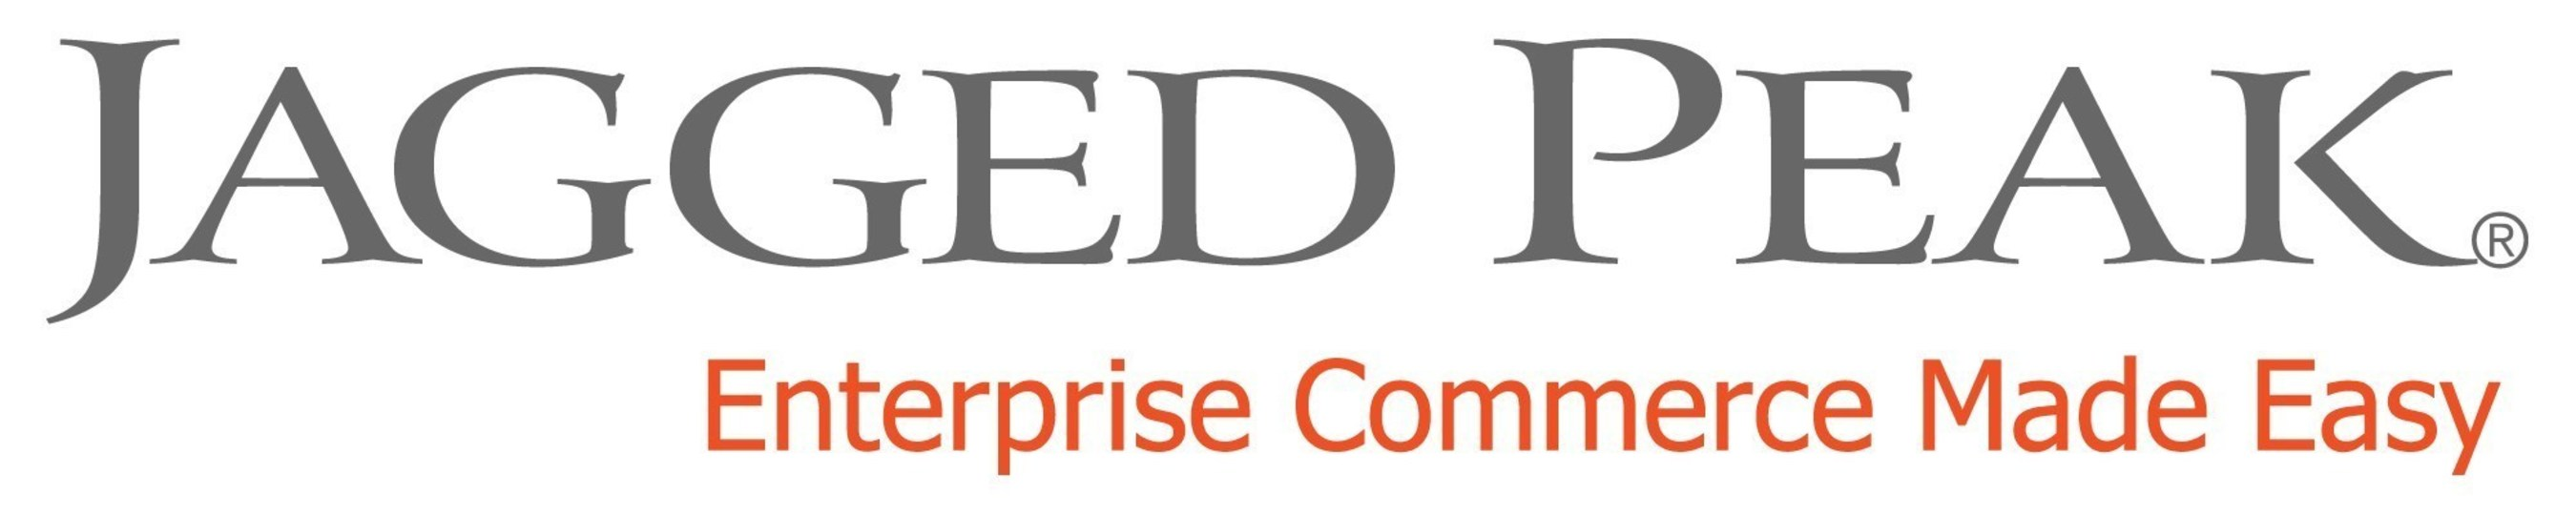 Jagged Peak Achieves Highest Level of PCI Data Security Compliance